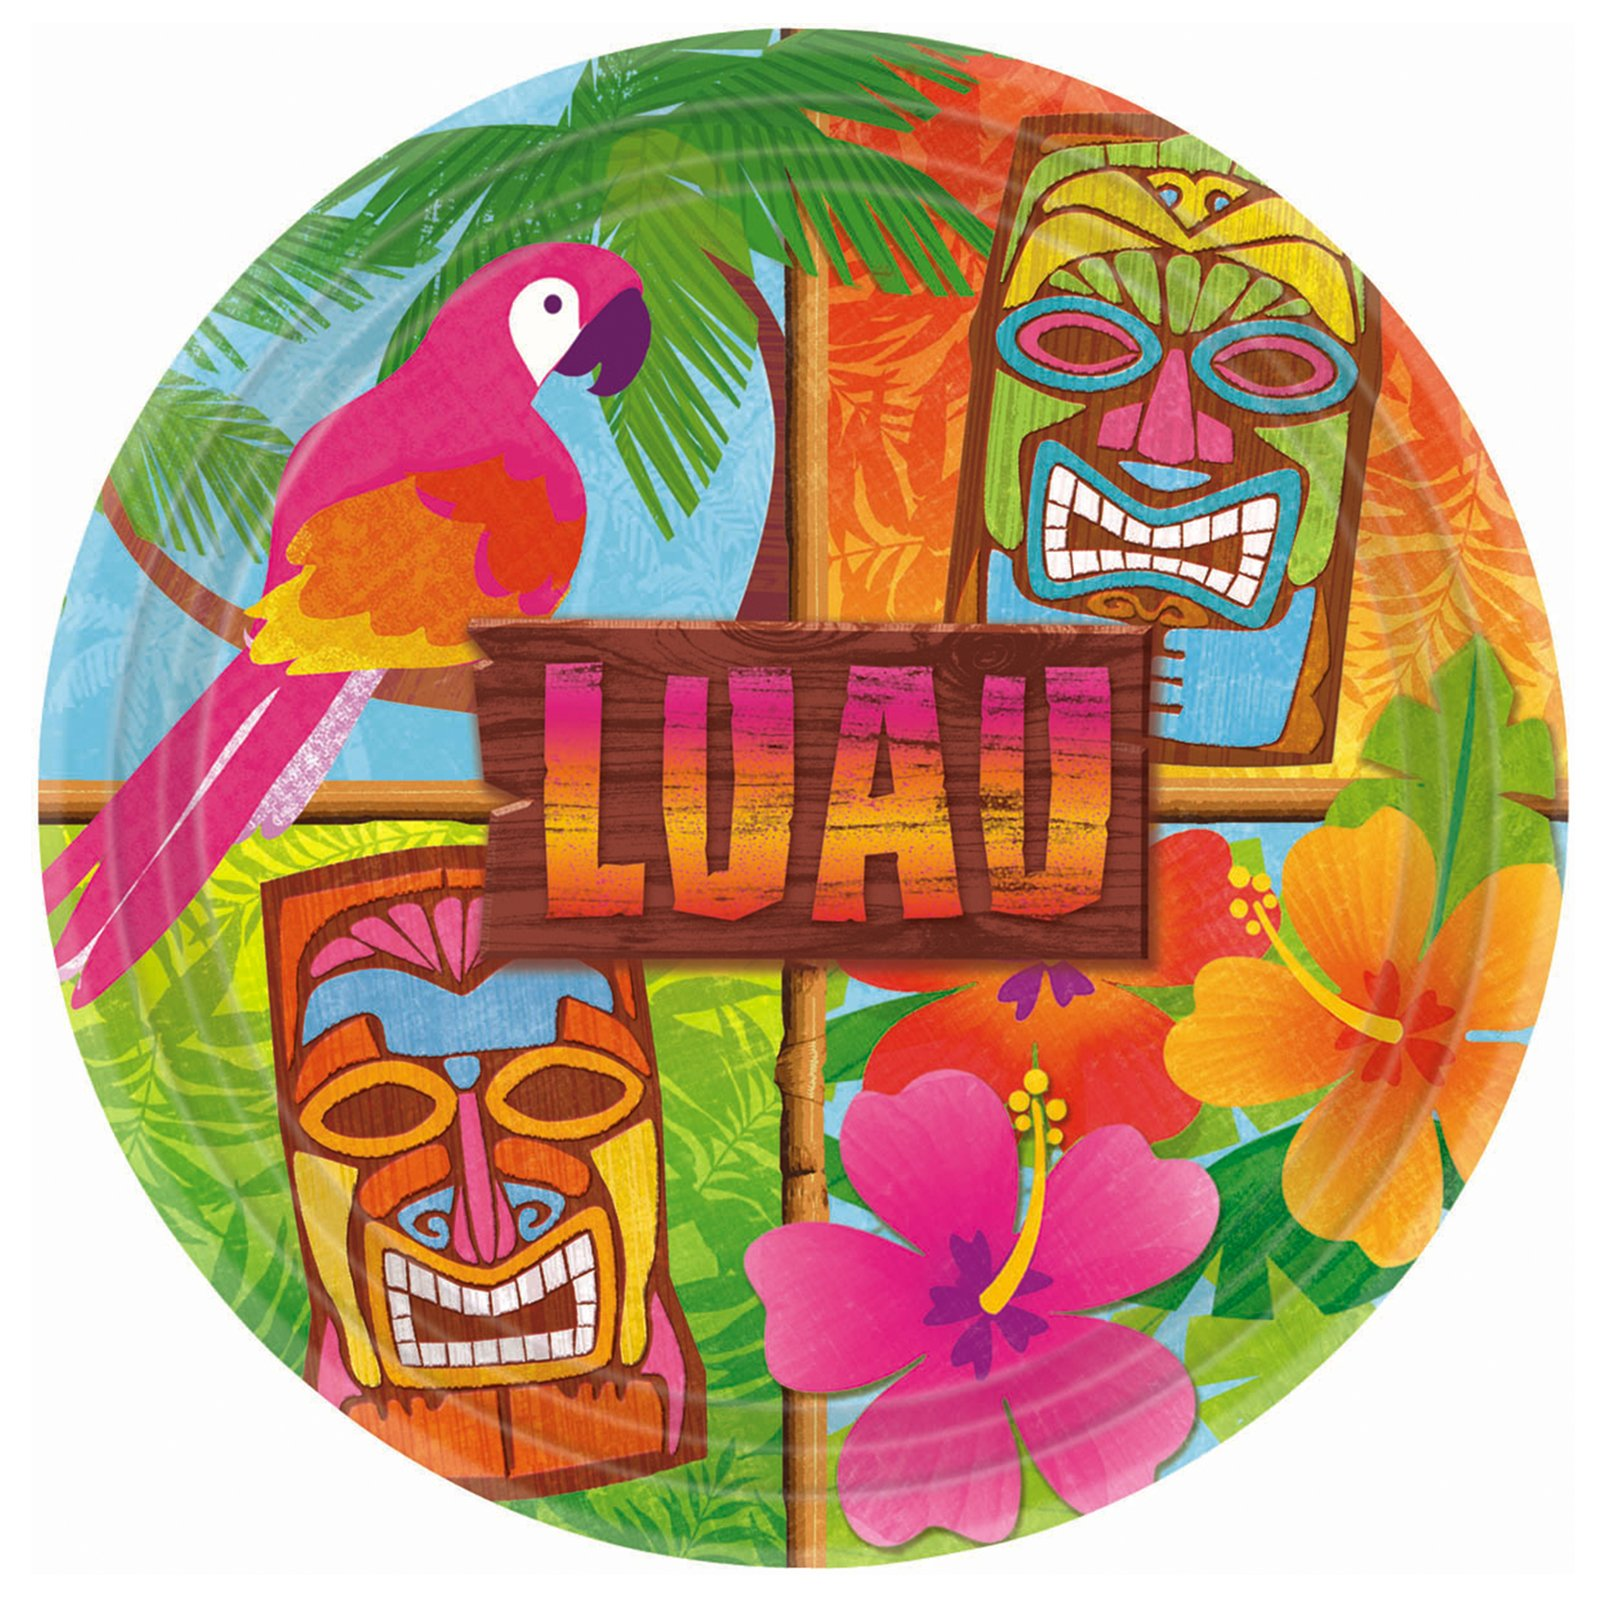 Luau Party Clip Art Luau Party Clip Art